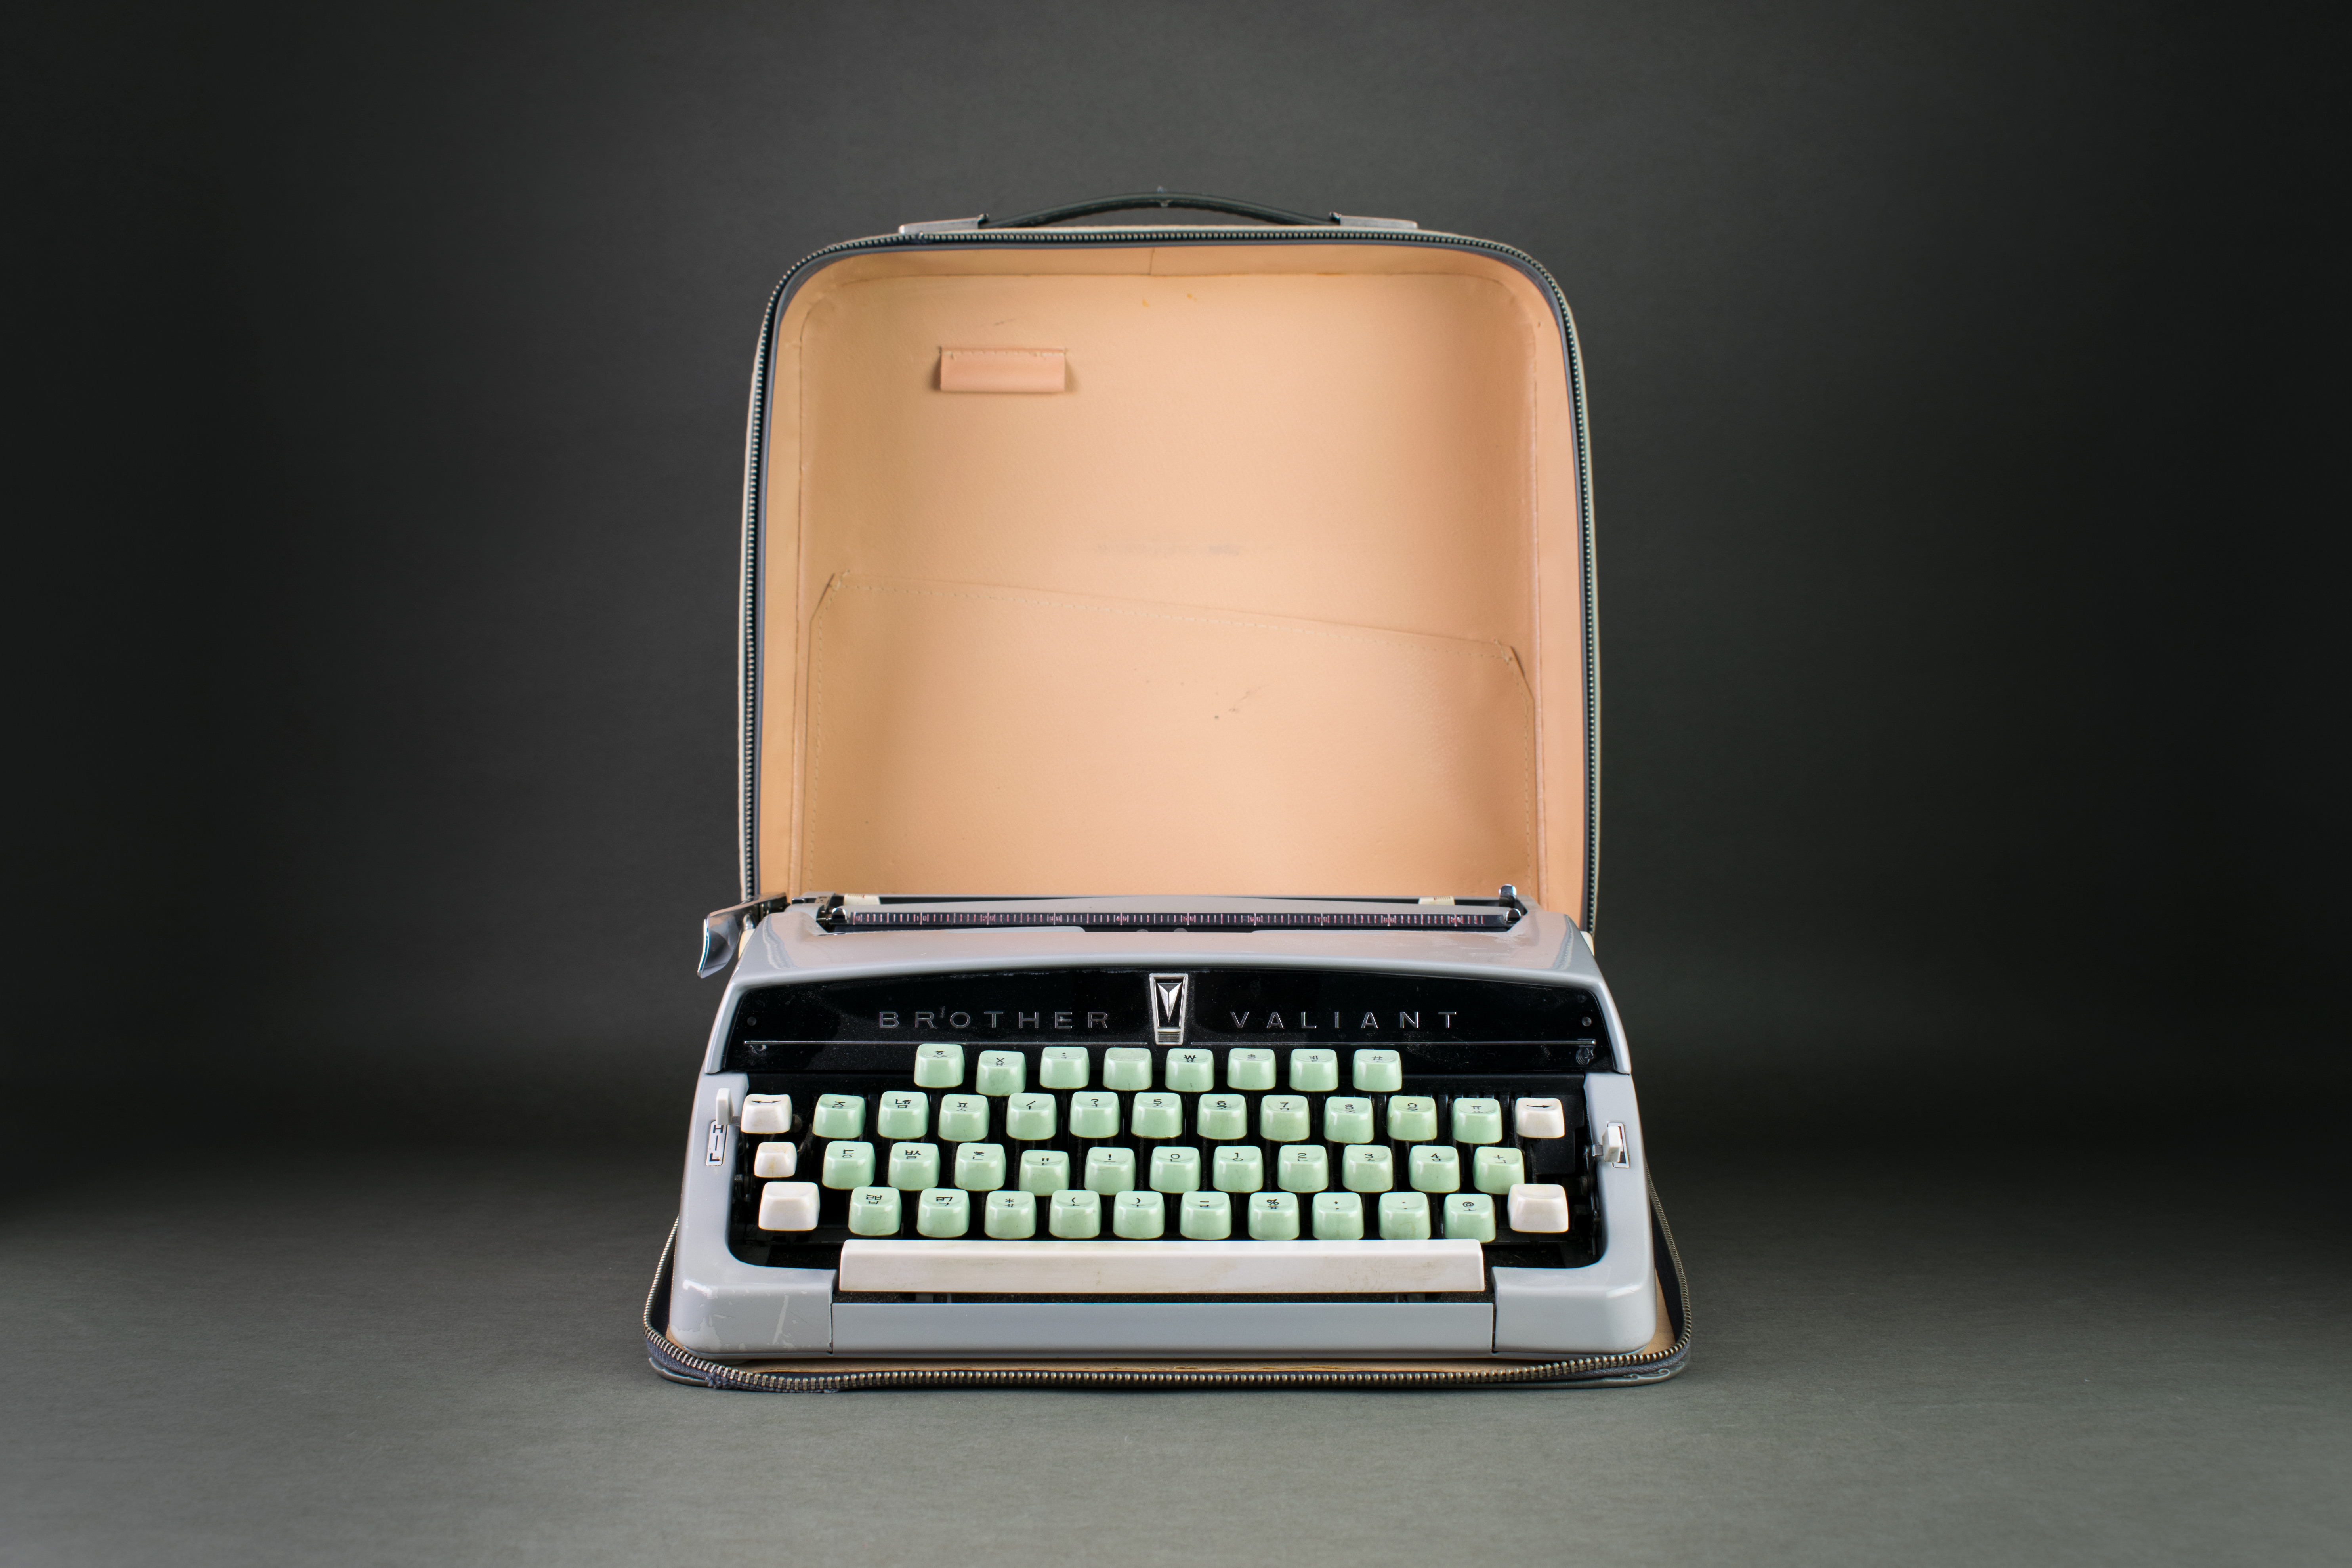 Typewriter of pediatrician and radiologist Sukil Lee, 1960s. Radioligist and pediatrician and radiologist Dr. Sukil Lee initiated the recruitment of South-Korean nurses to Germany. He was working at the University-Clinic of Mainz. On this typewriter, Dr.Lee wrote the entire correspondence for the recruitment of Korean nurses during the 1960s. DOMiD-Archive, Cologne, E 1359,0046